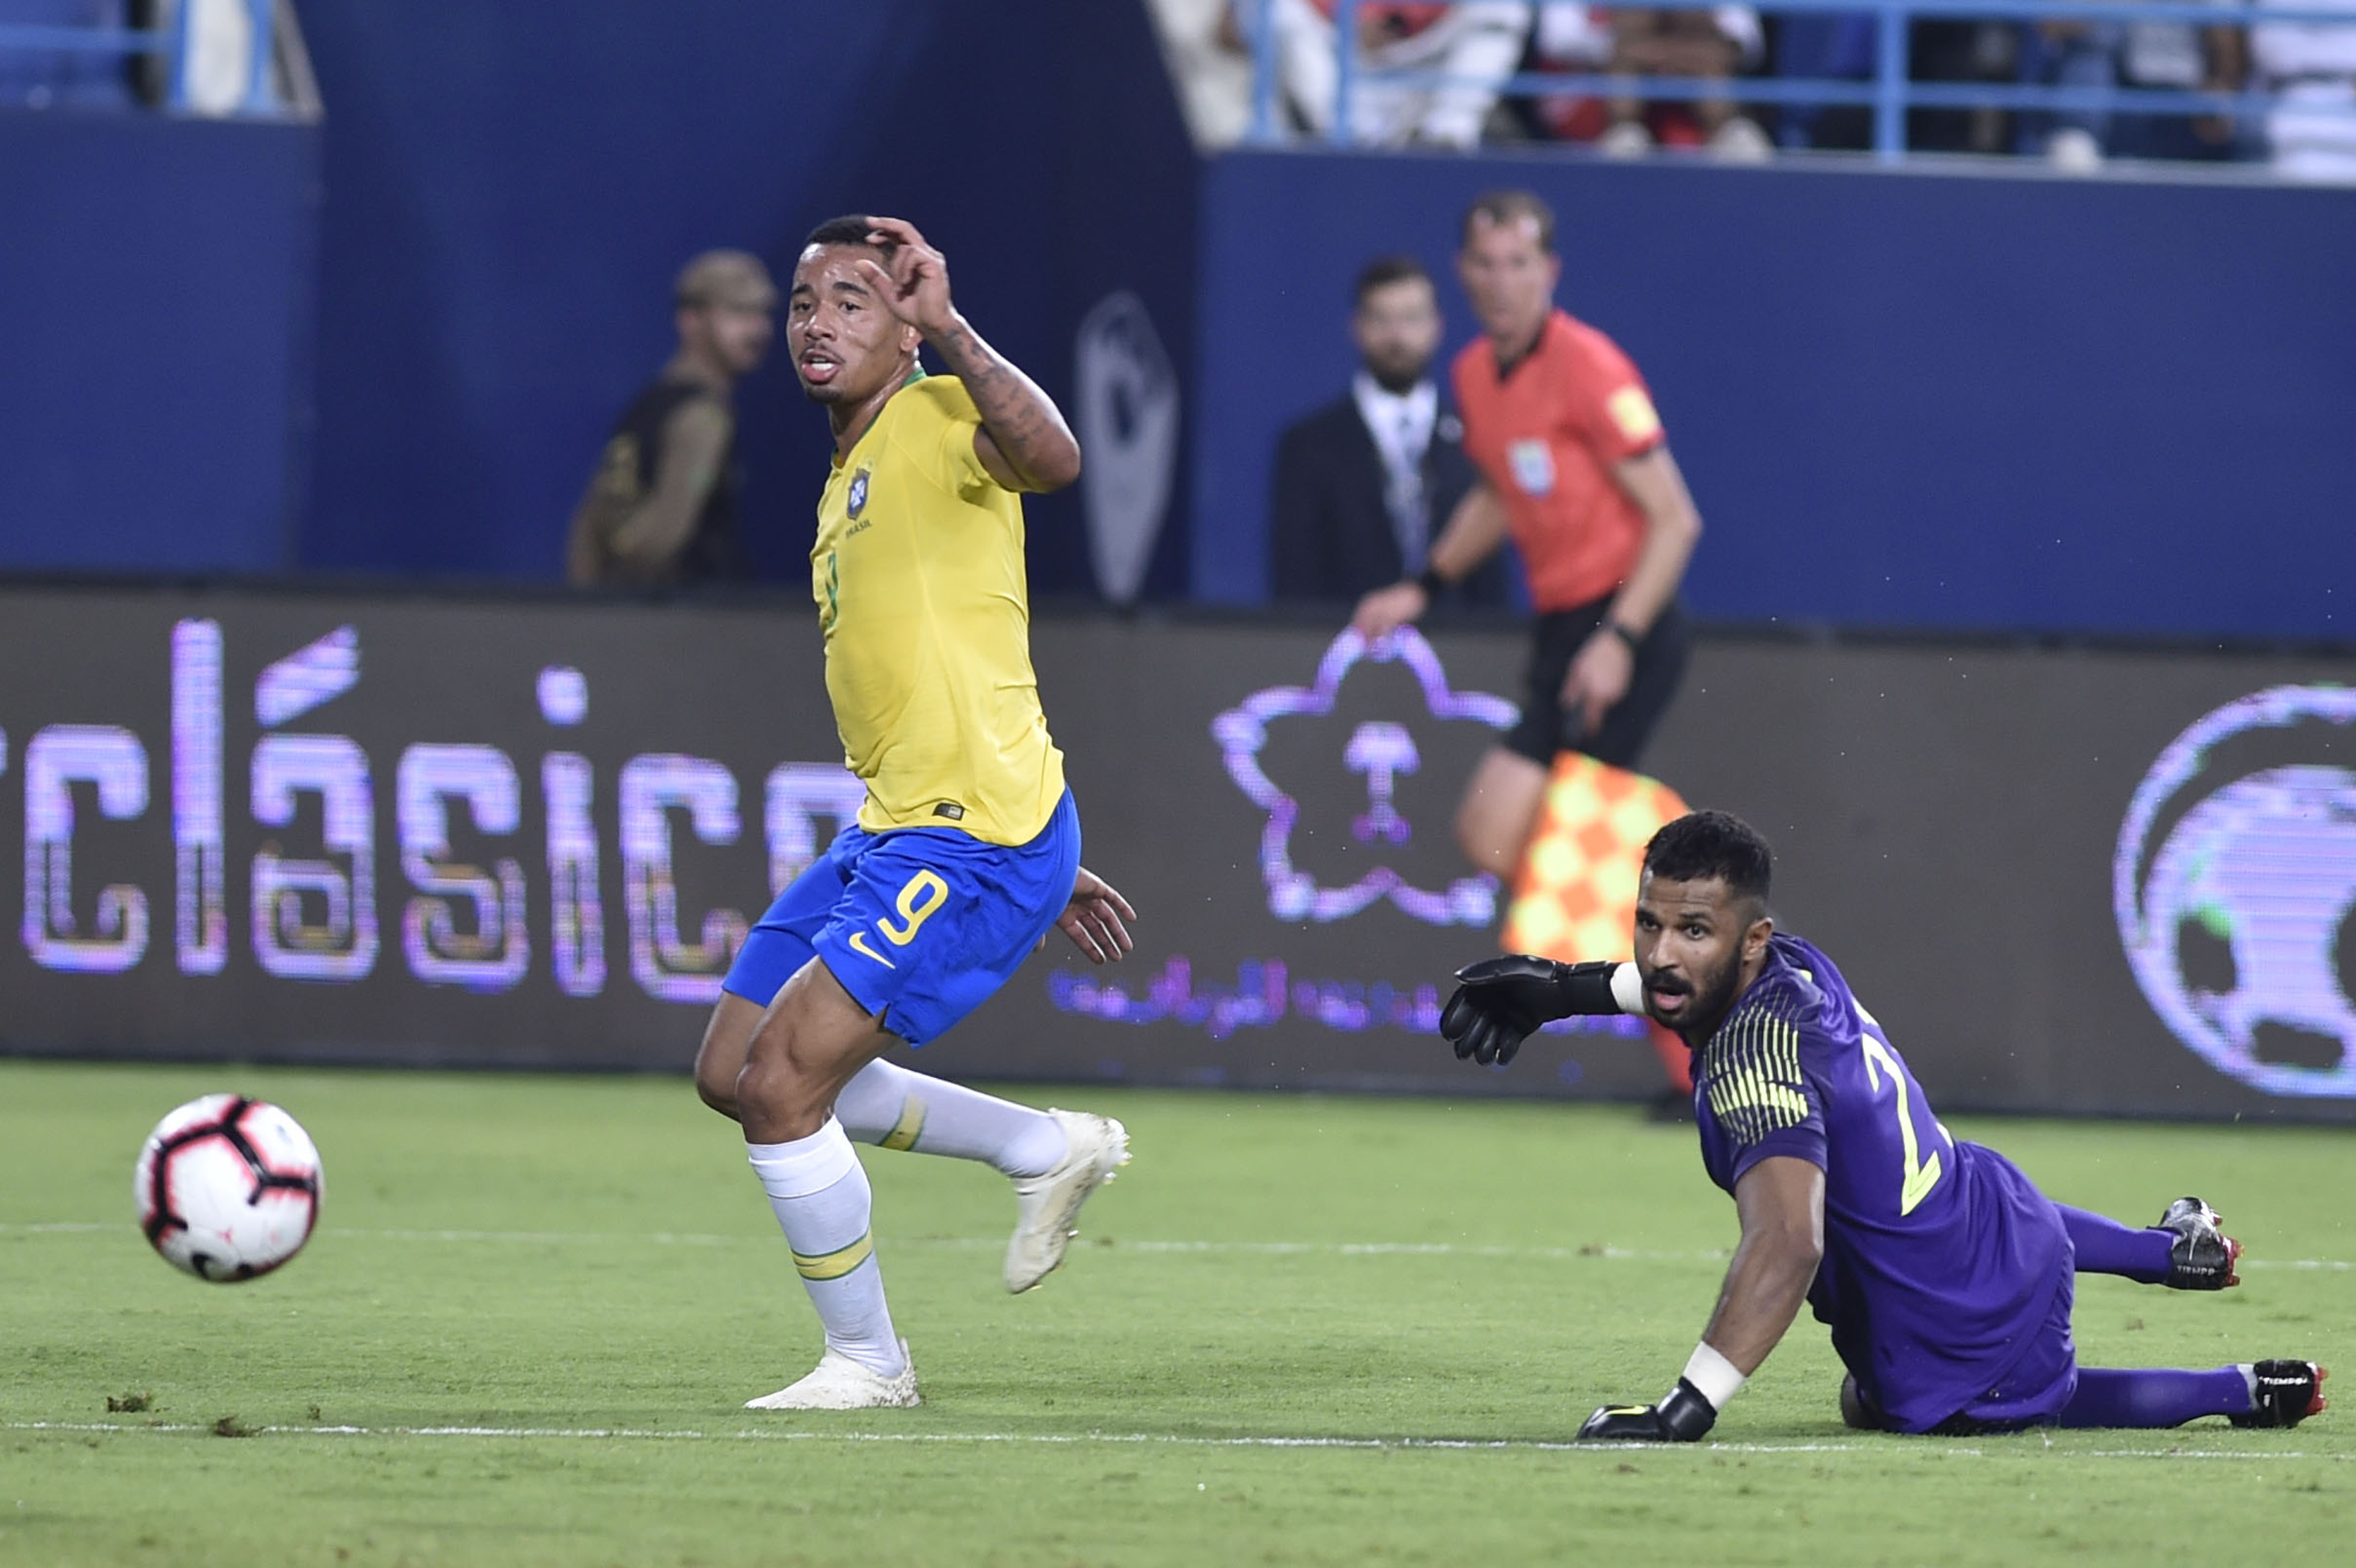 Jesus scores as Brazil beats Saudi Arabia 2-0 in friendly